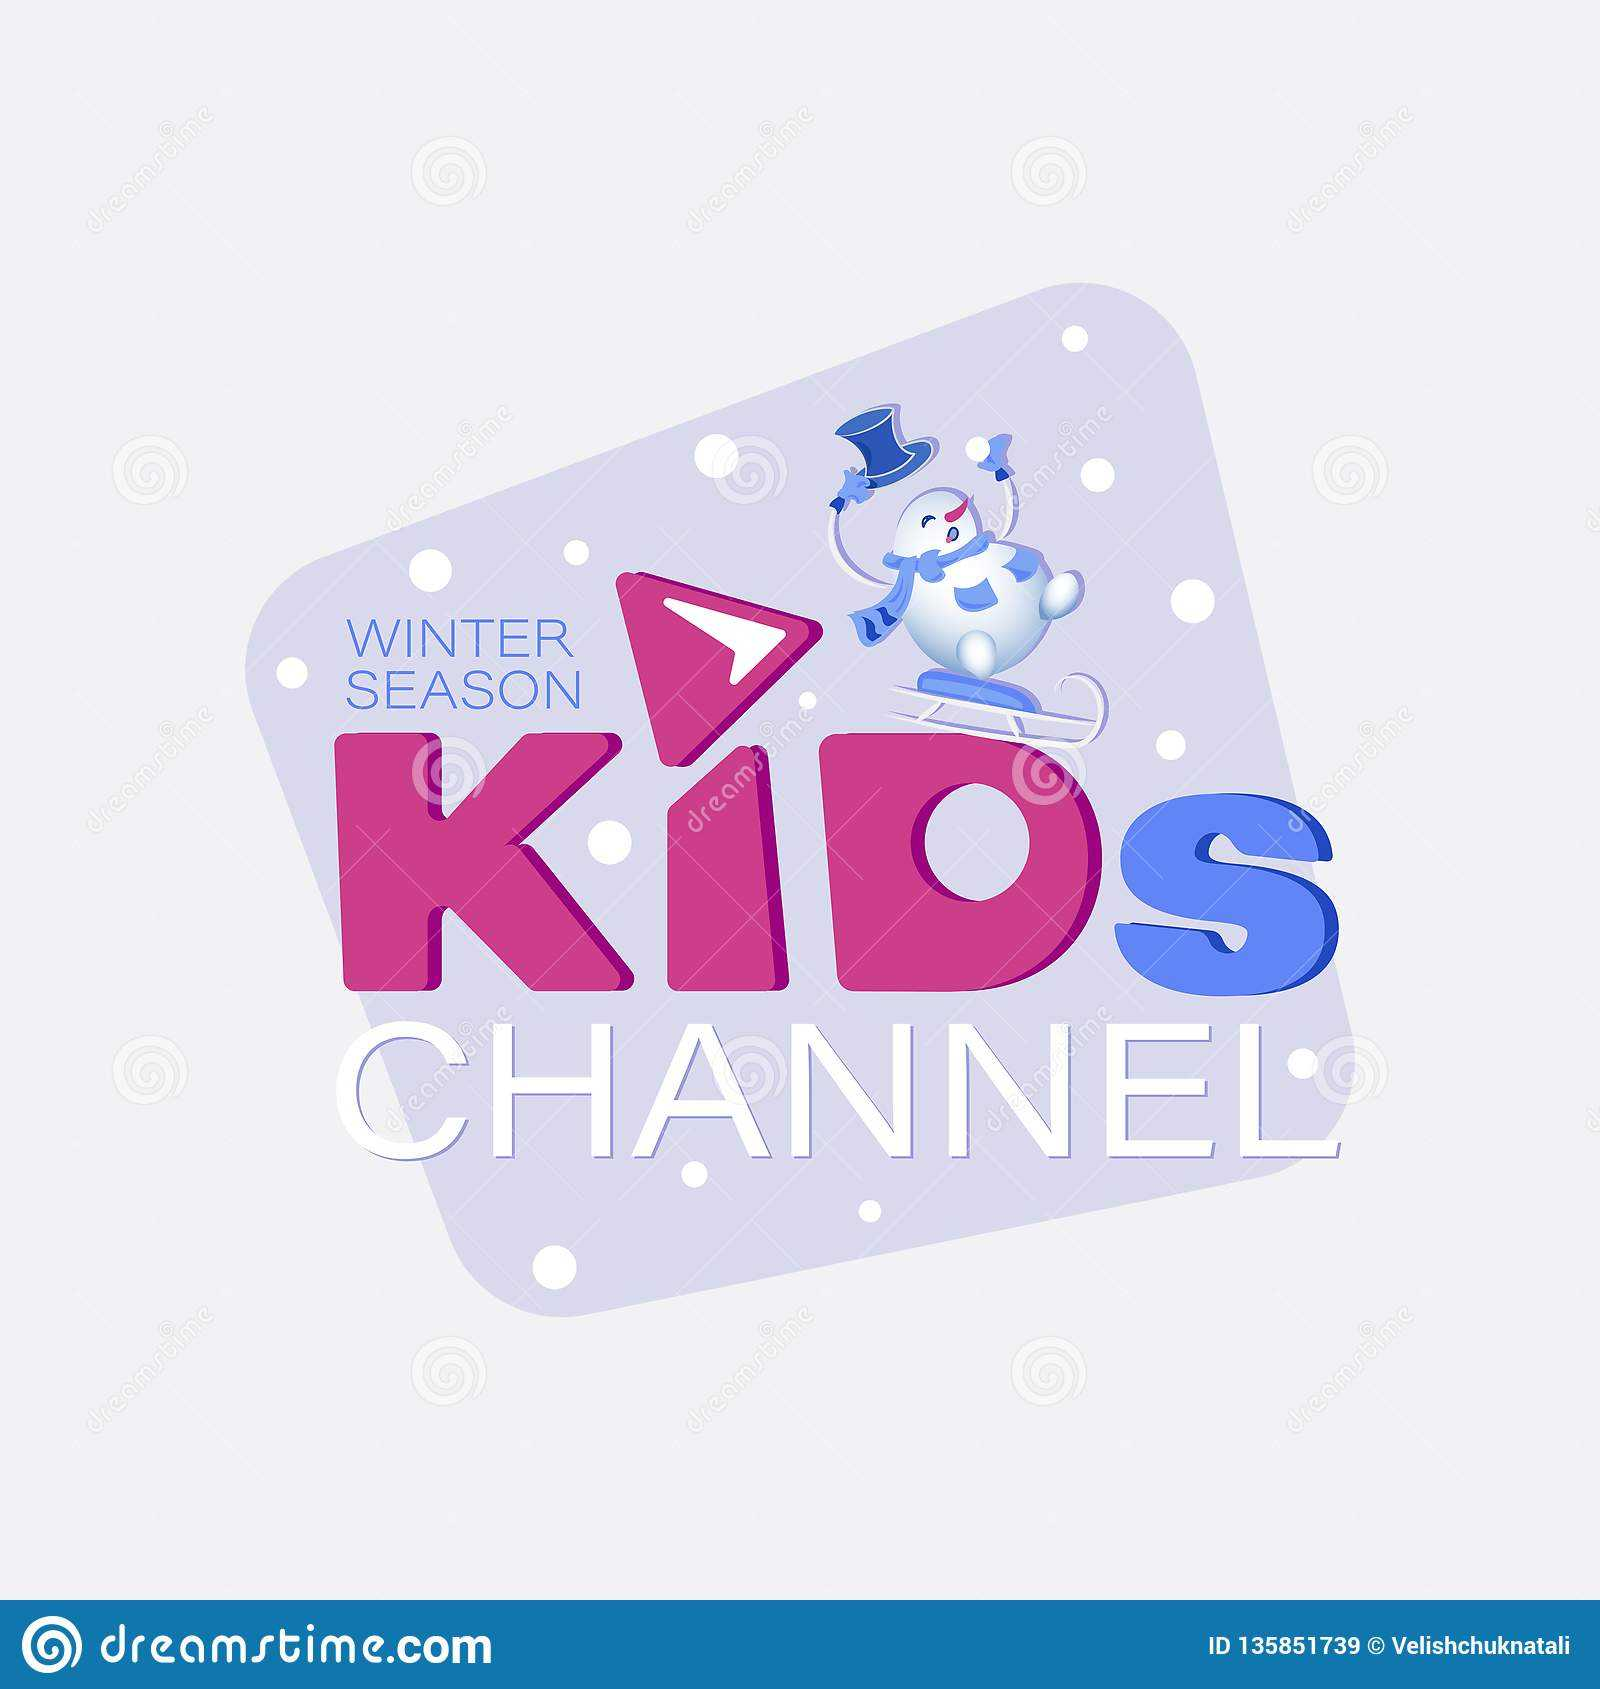 Winter Season. Channel Logo Design Template For Kids. Stock Throughout Credit Card Template For Kids